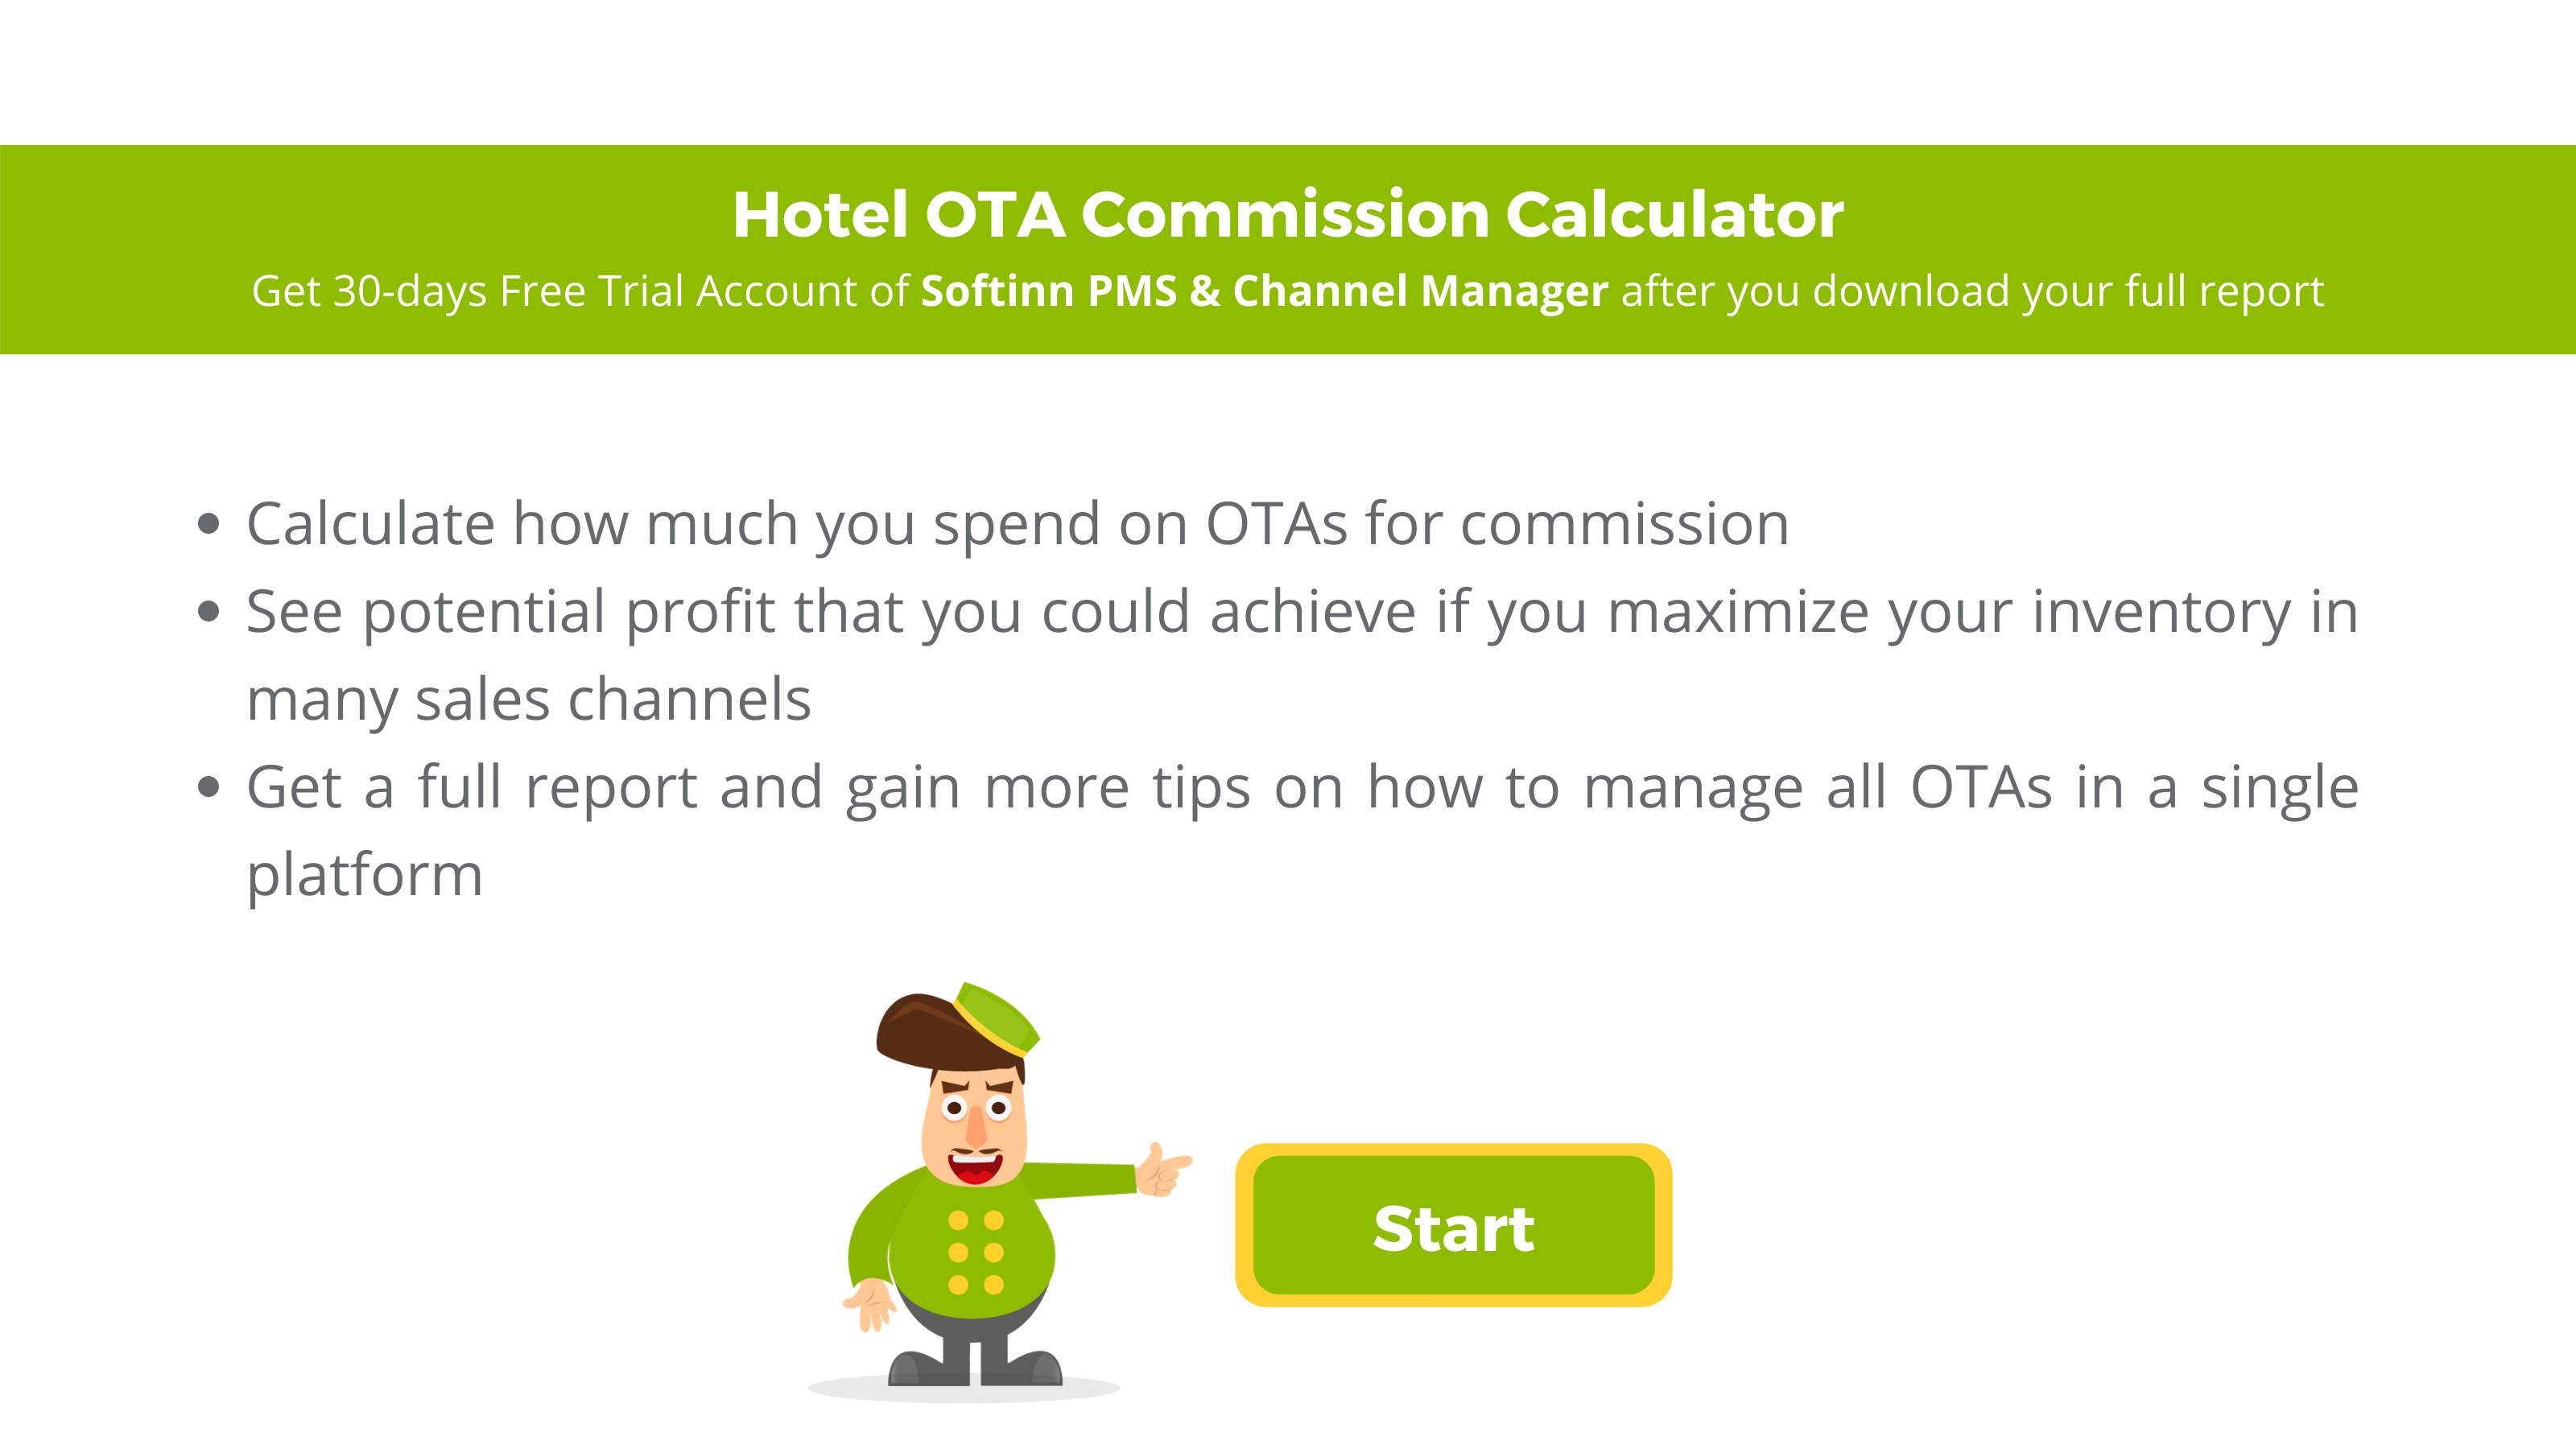 Hotel OTA Commission Calculator